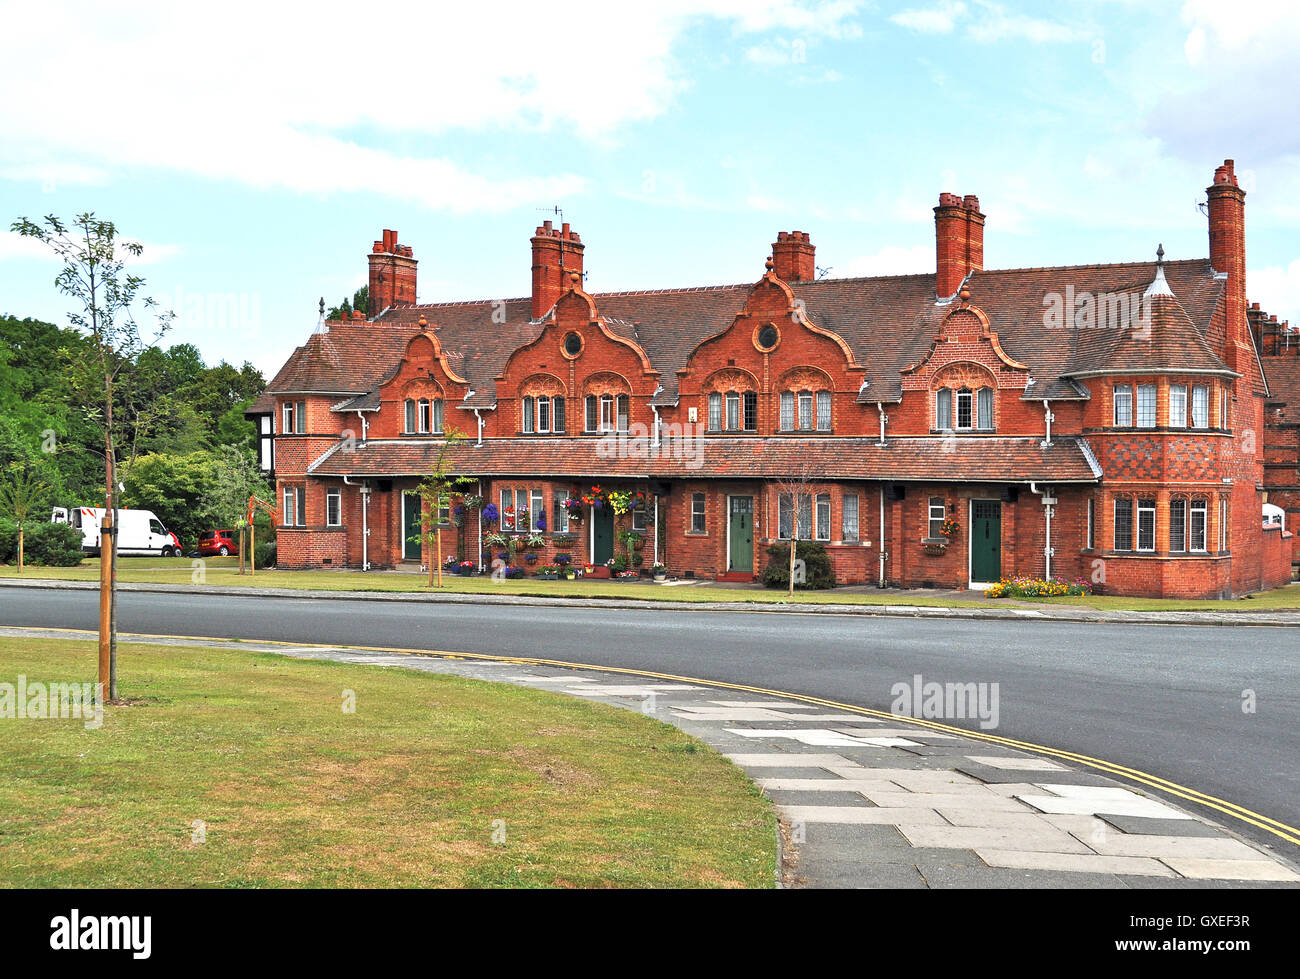 Housing in Port Sunlight village on the Wirral, Merseyside, England, UK - Stock Image